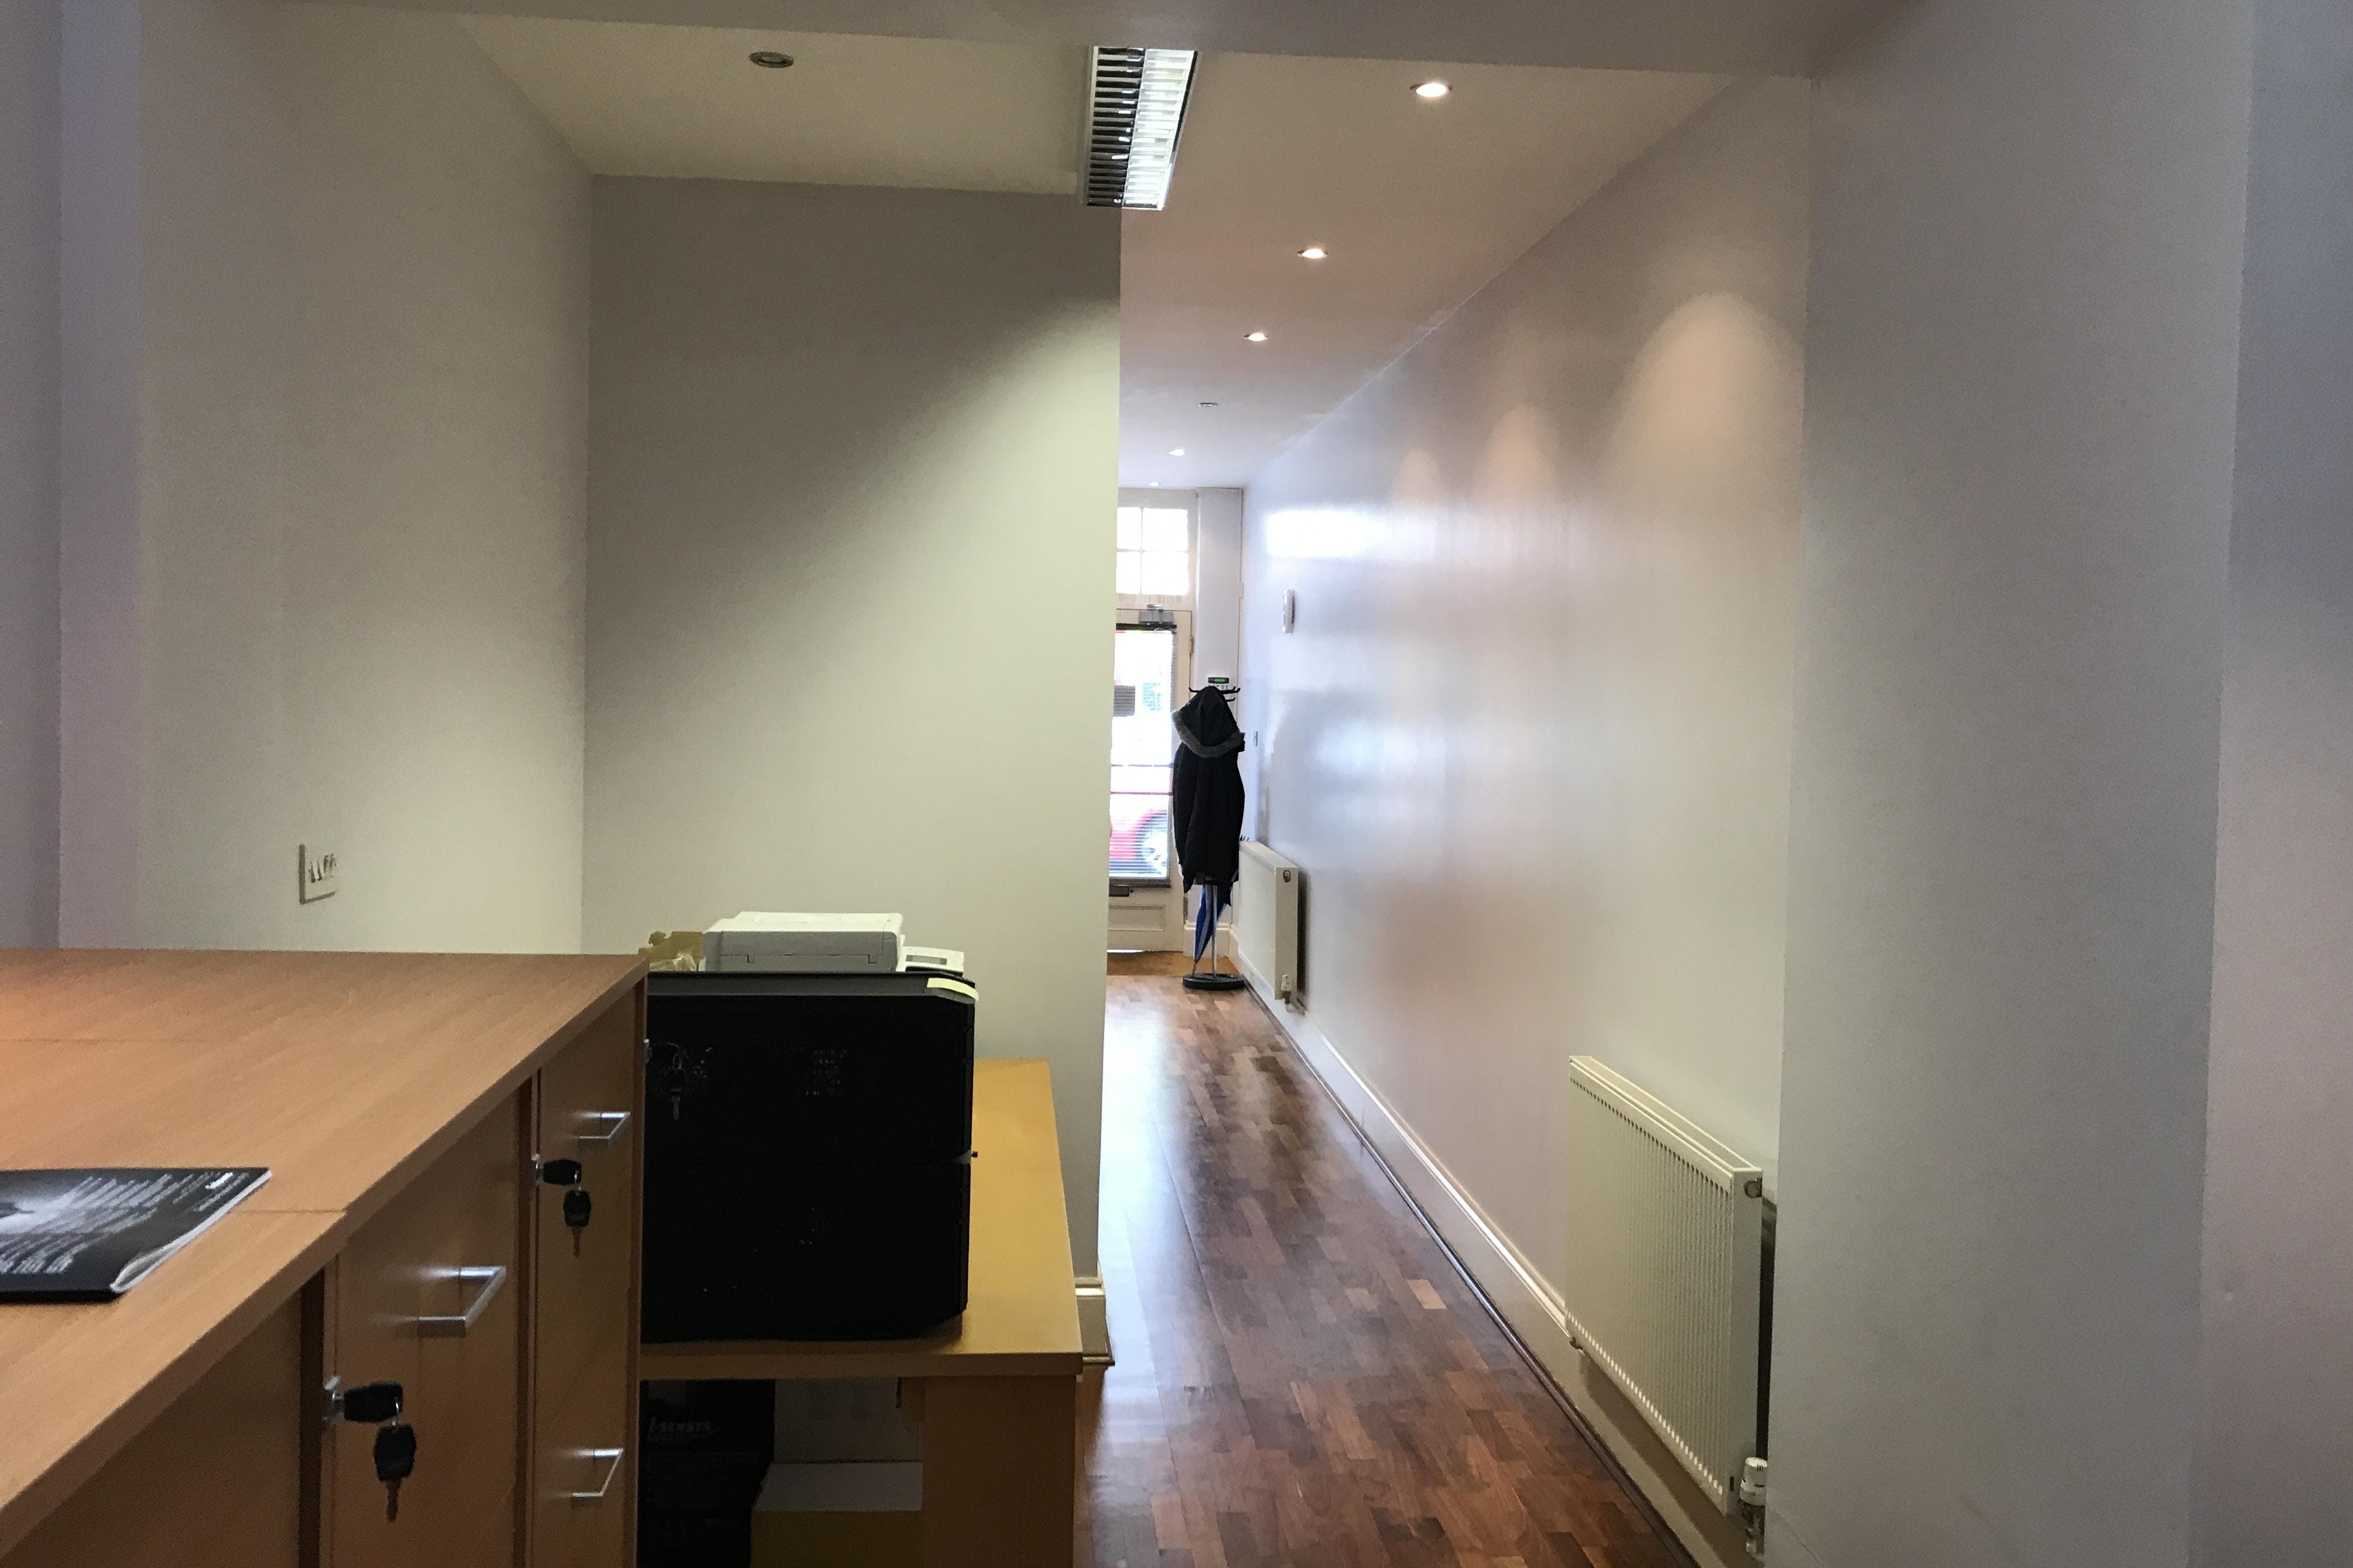 52 St Leonards Road, Bexhill On Sea, Office / Retail To Let - IMG_7954.JPG